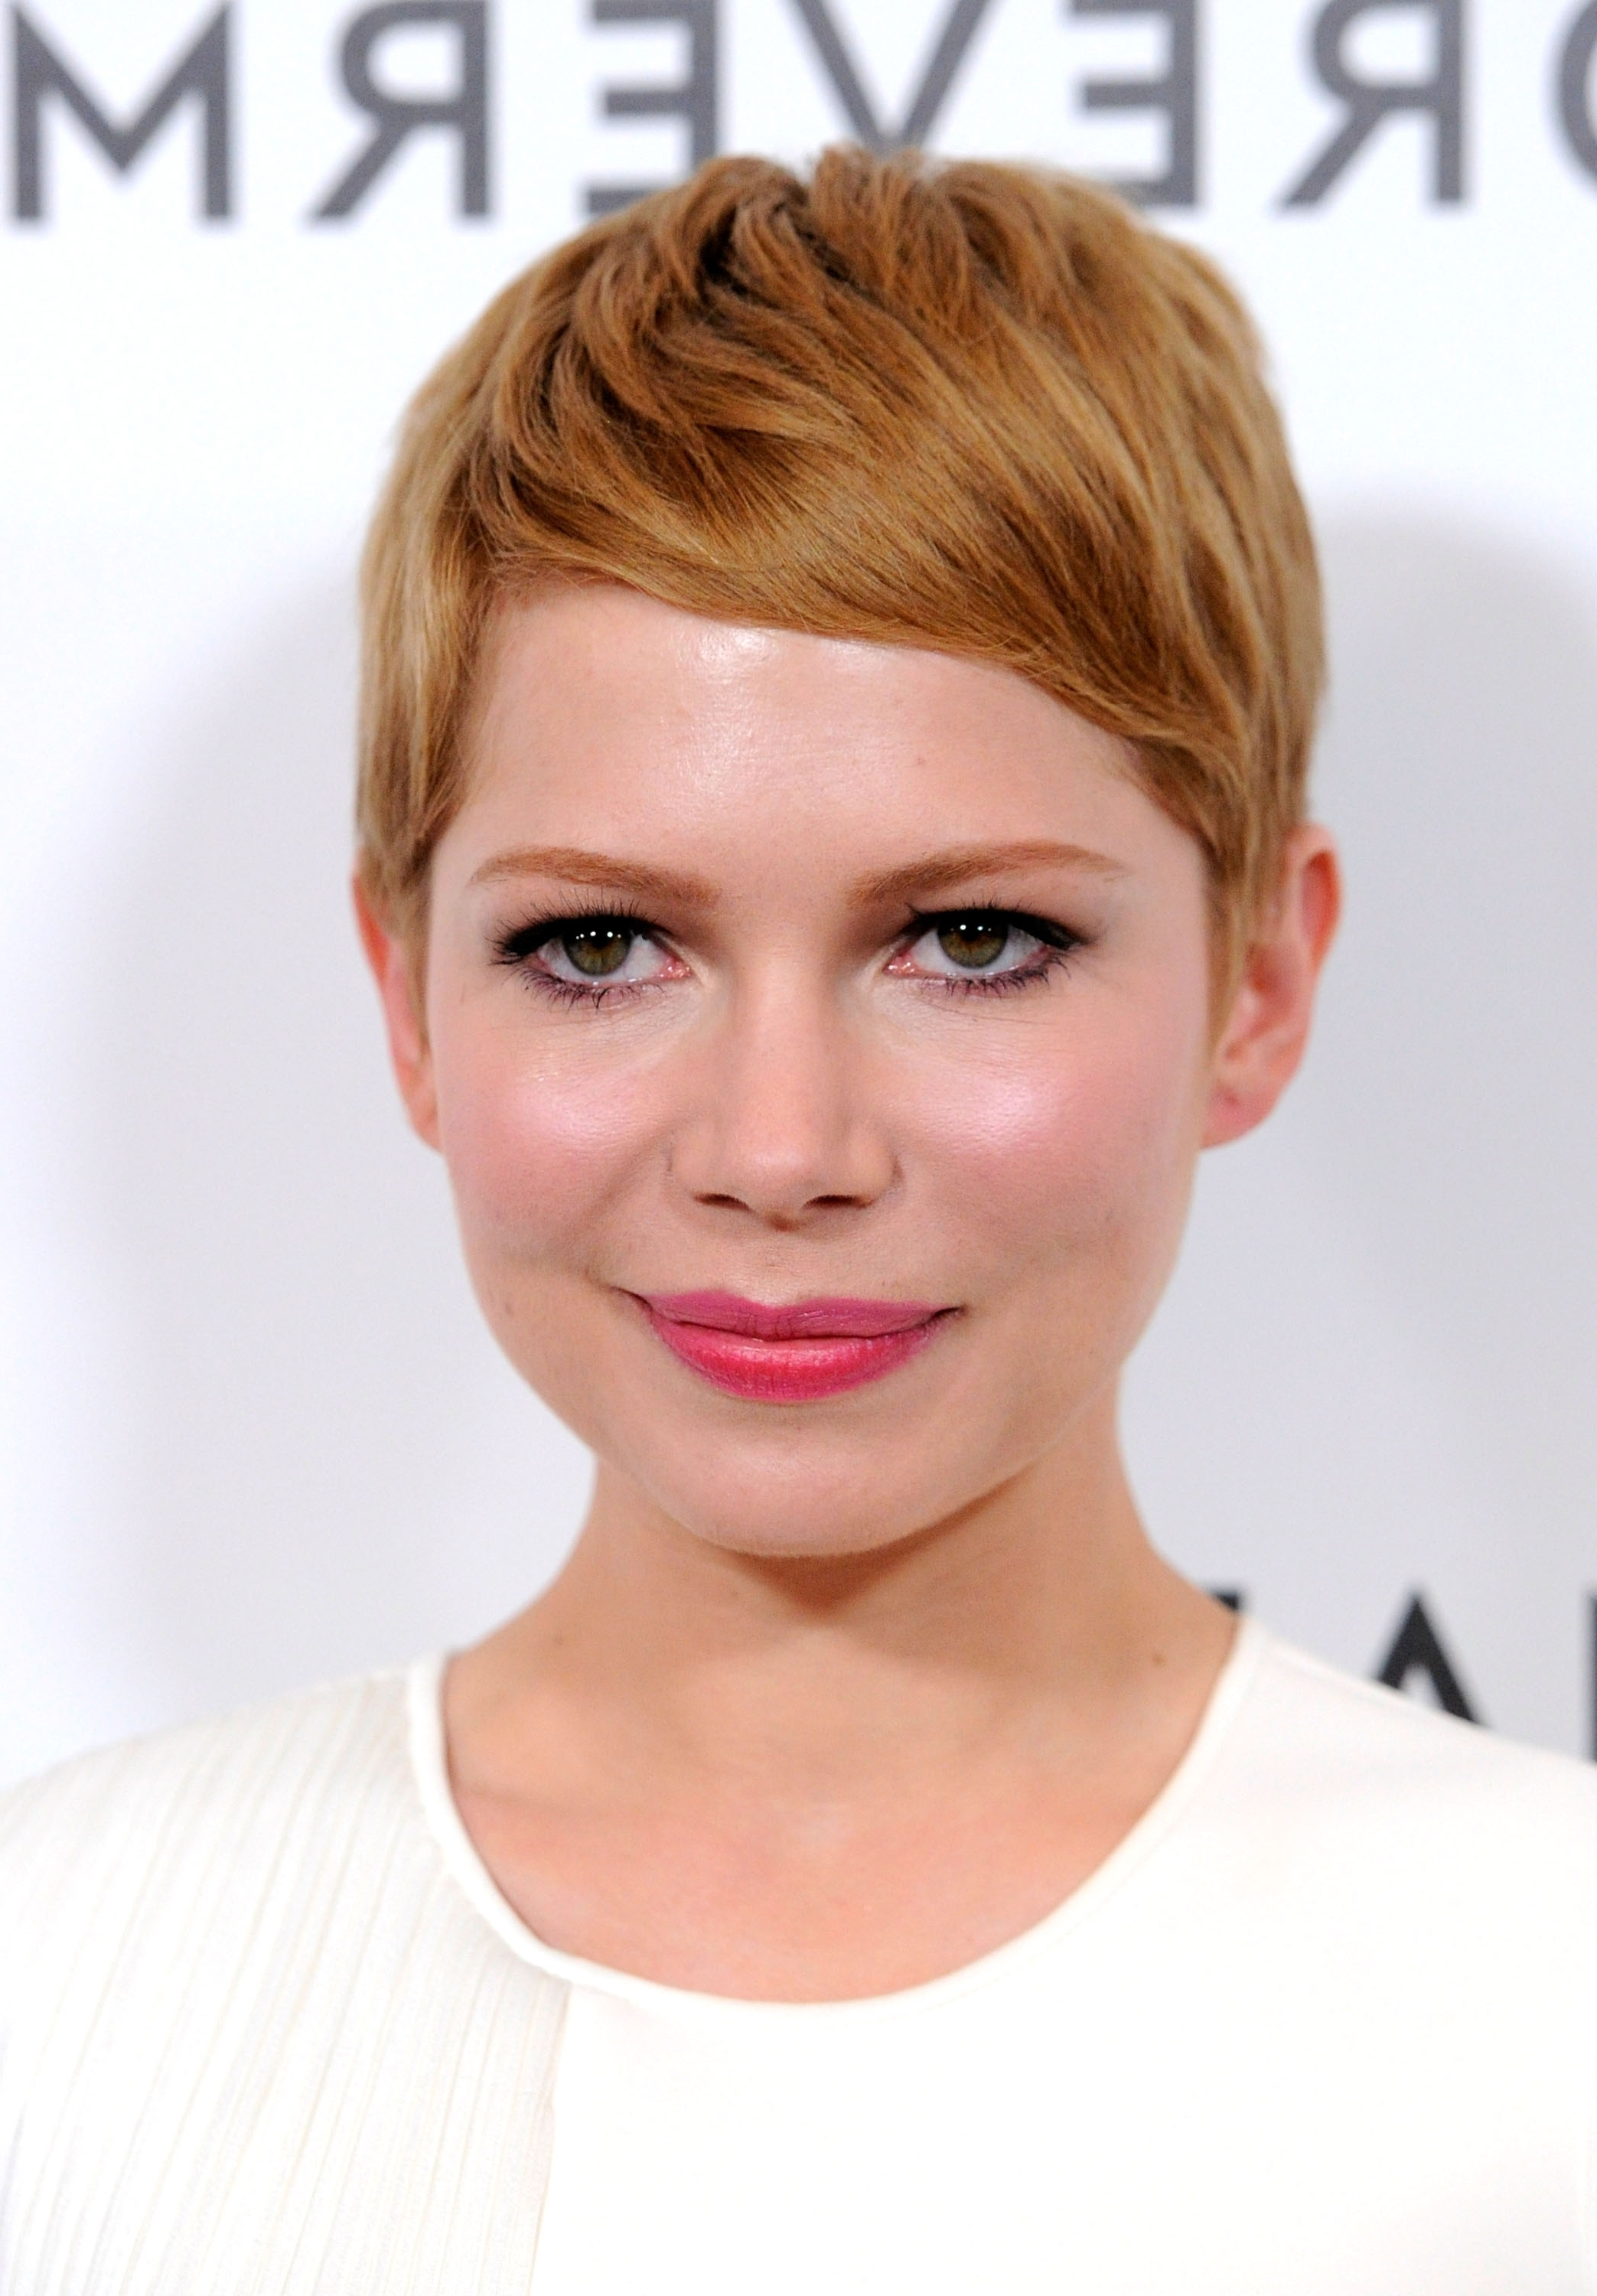 40 Best Short Pixie Cut Hairstyles 2018 – Cute Pixie Haircuts For Regarding Recent Pixie Hairstyles For Wavy Hair (View 15 of 15)